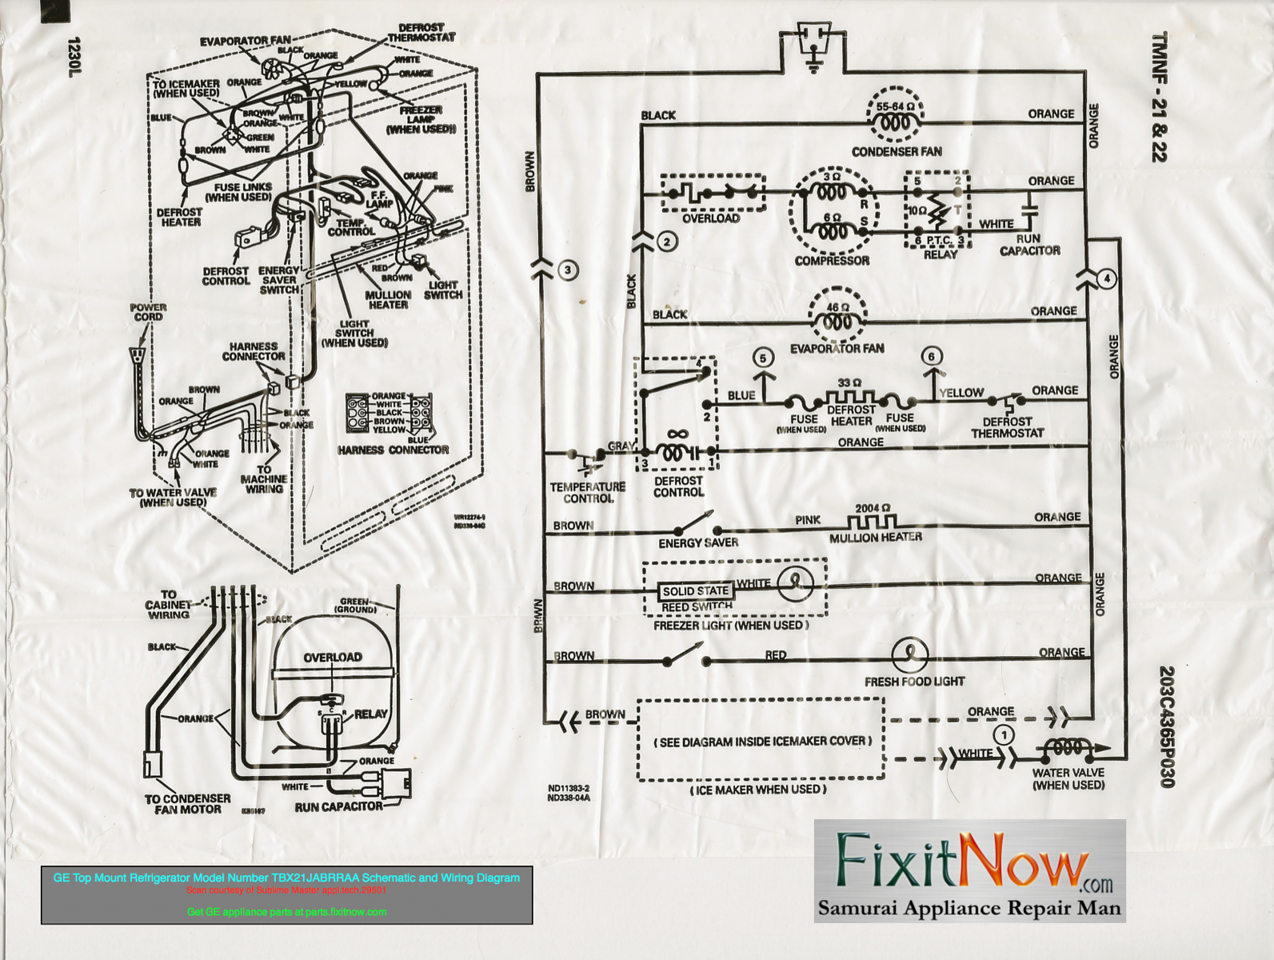 Whirlpool Air Conditioner Wiring Diagram Library Diagrams And Schematics Appliantology Rh Smugmug Com Dryer Schematic